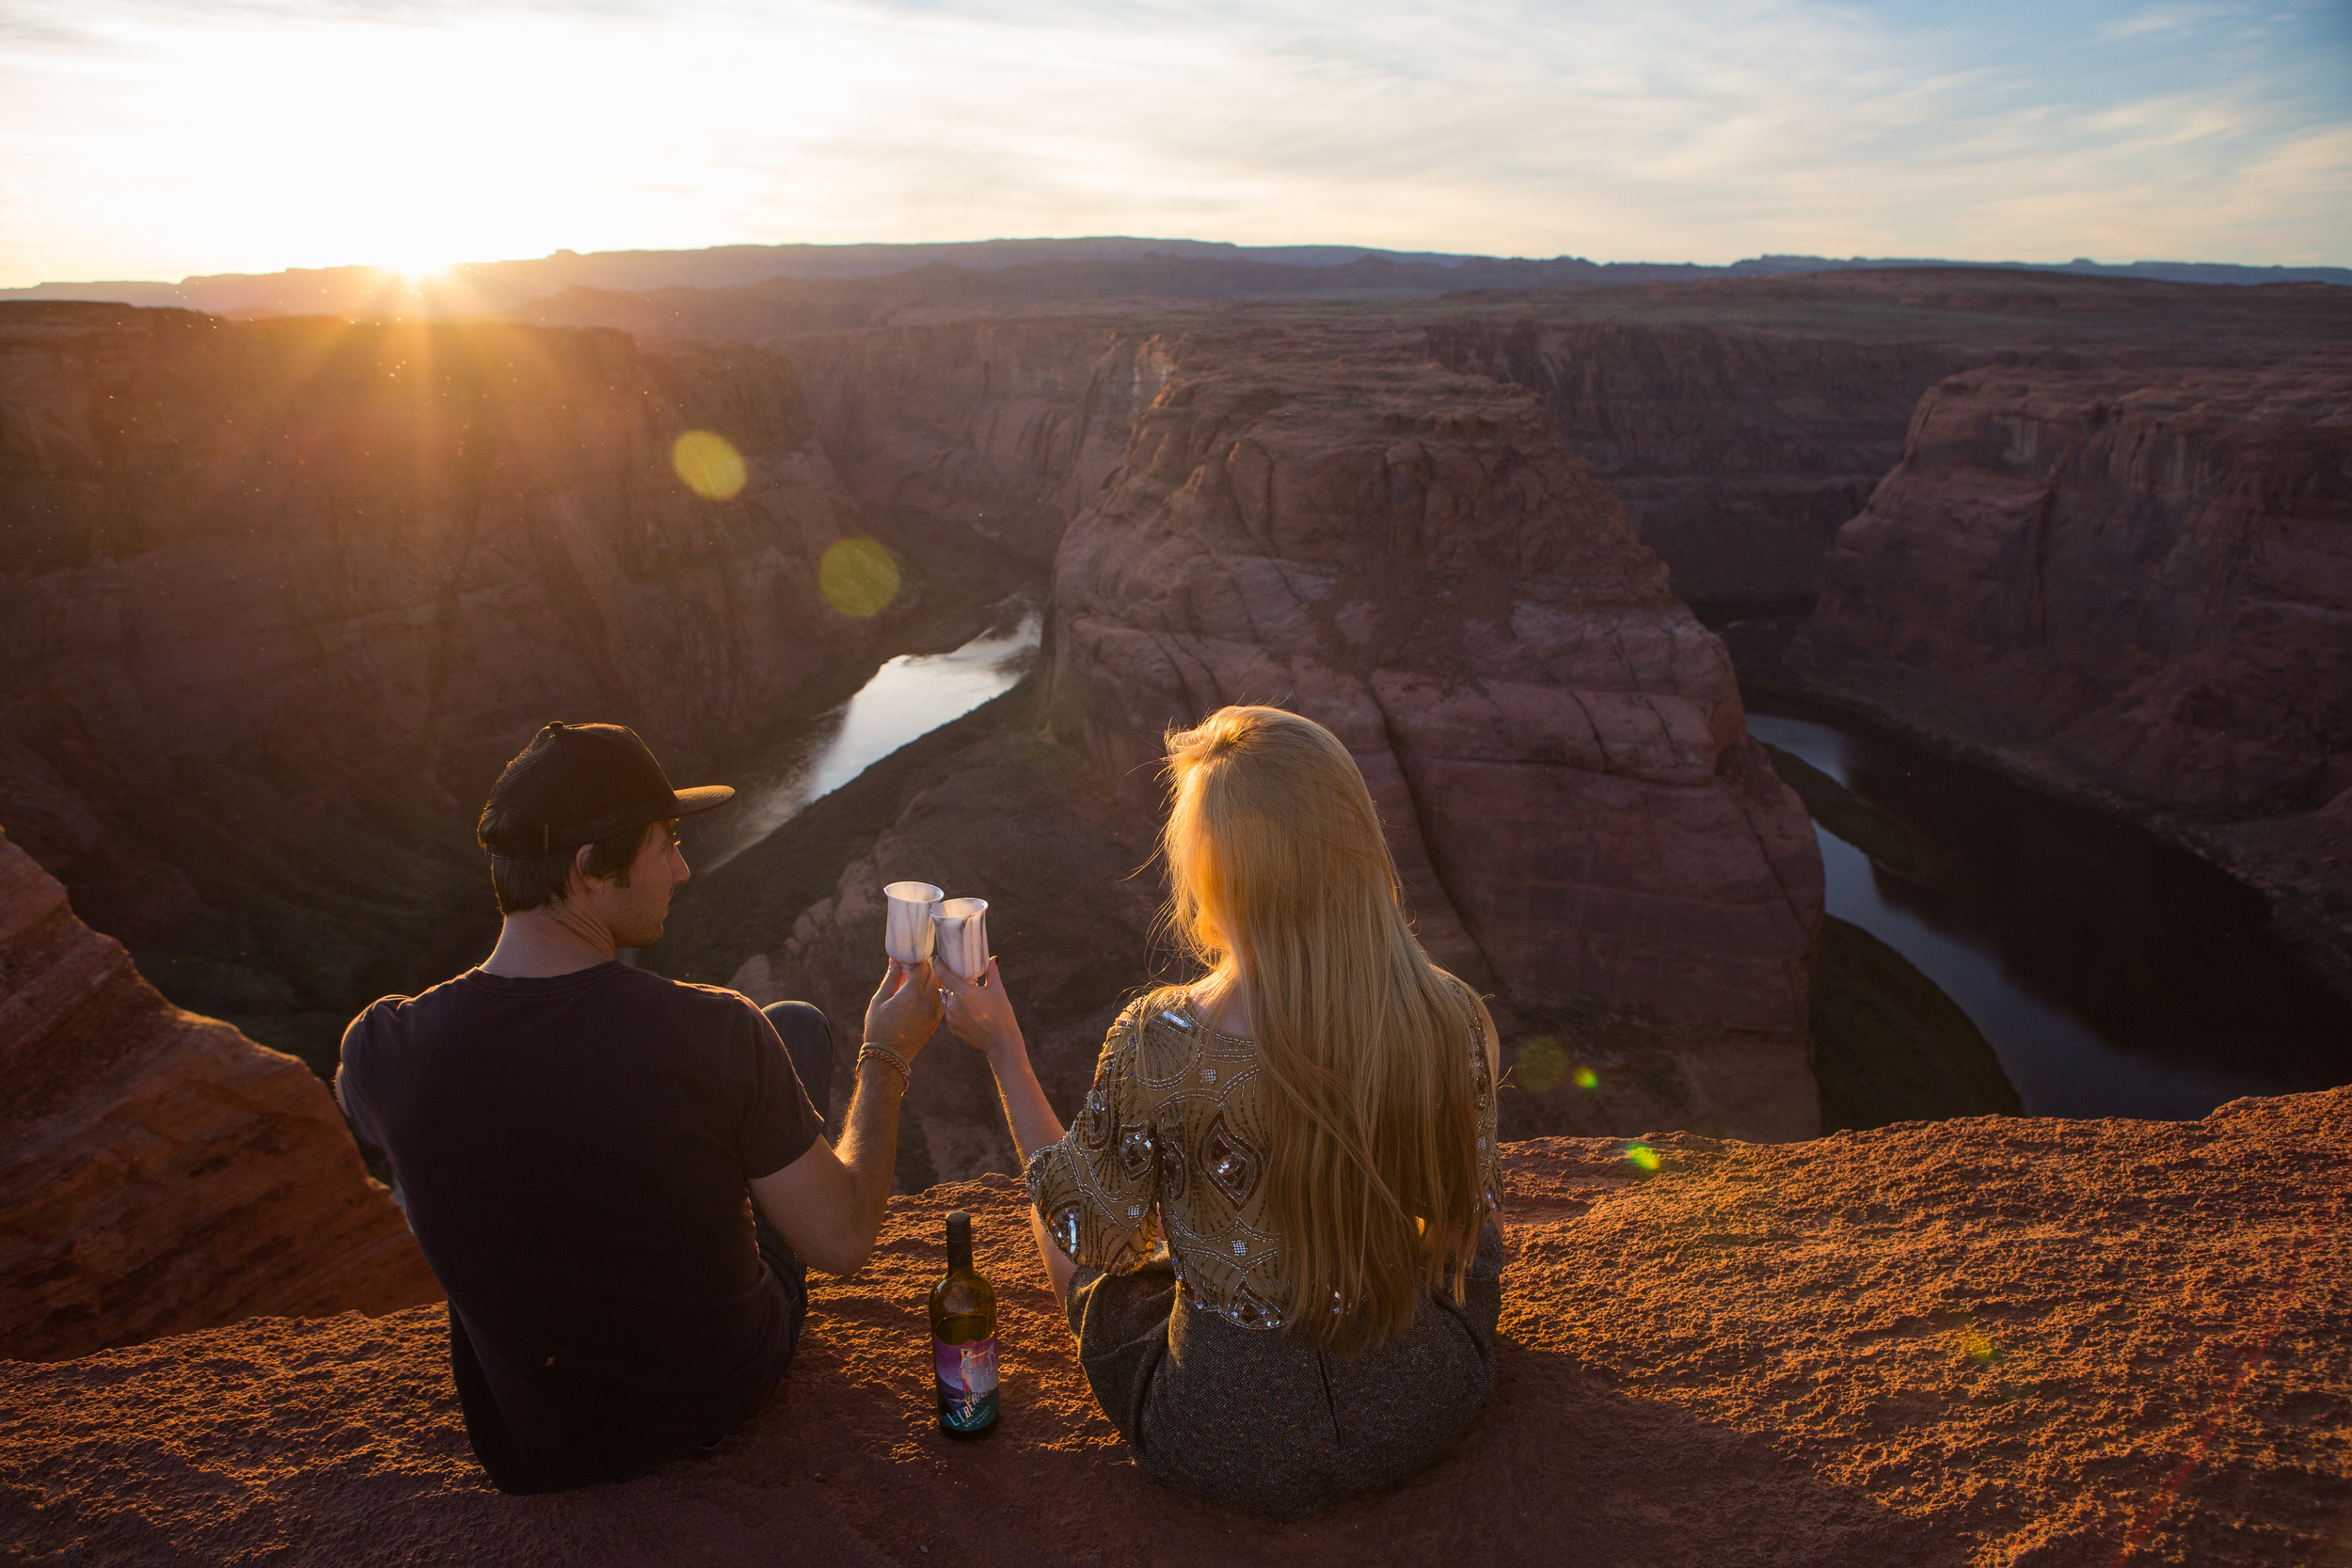 AstroBandit_JordanRose_DariusTwin_DarrenPearon_HorseshoeBend_Cheers_Sunset_Arizona_Wanderlust_Travel_Couple_Love.jpg